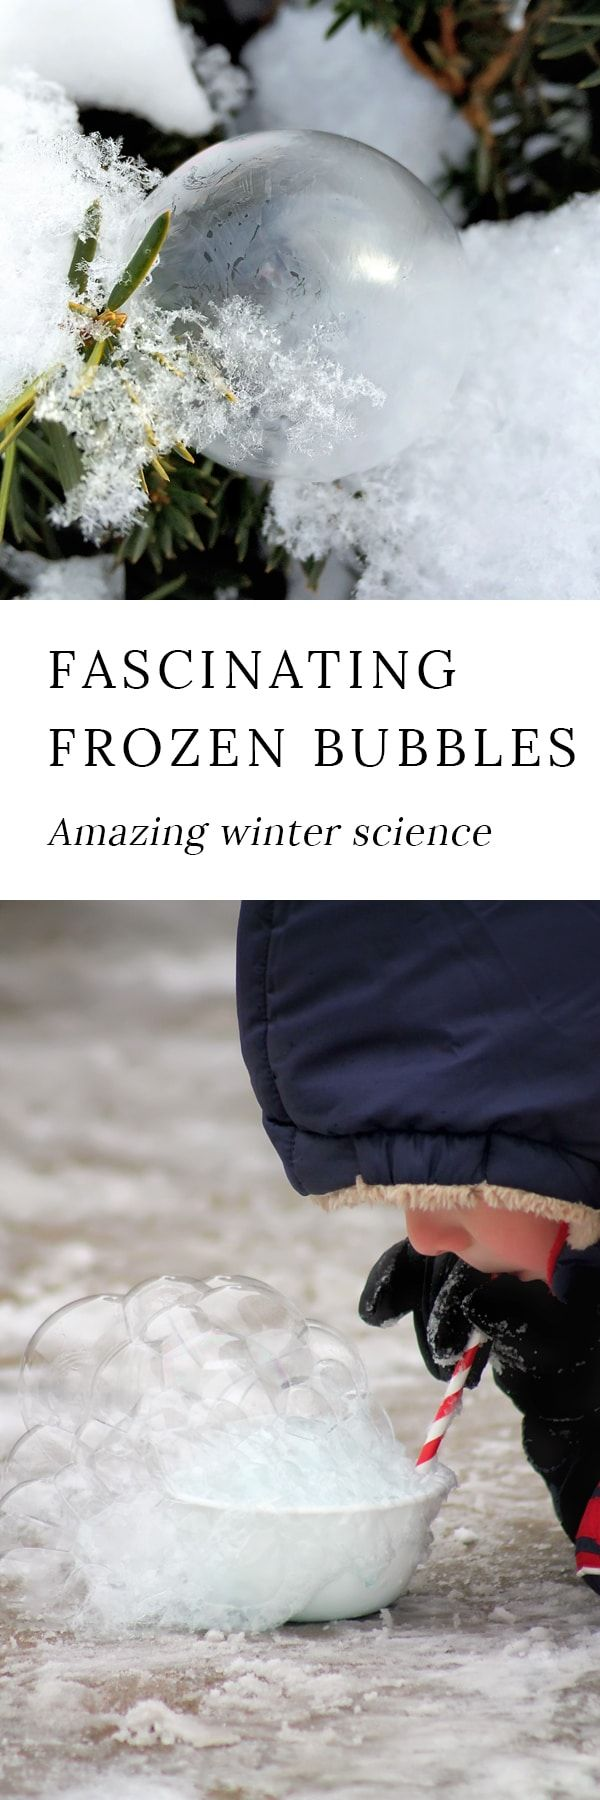 Bundle up and head outside for some extreme winter science with the kids. Make and observe fascinating frozen bubbles! #winterscience #frozenbubbles #winterscienceforkids #outdooractivitiesforkids via @https://www.pinterest.com/fireflymudpie/